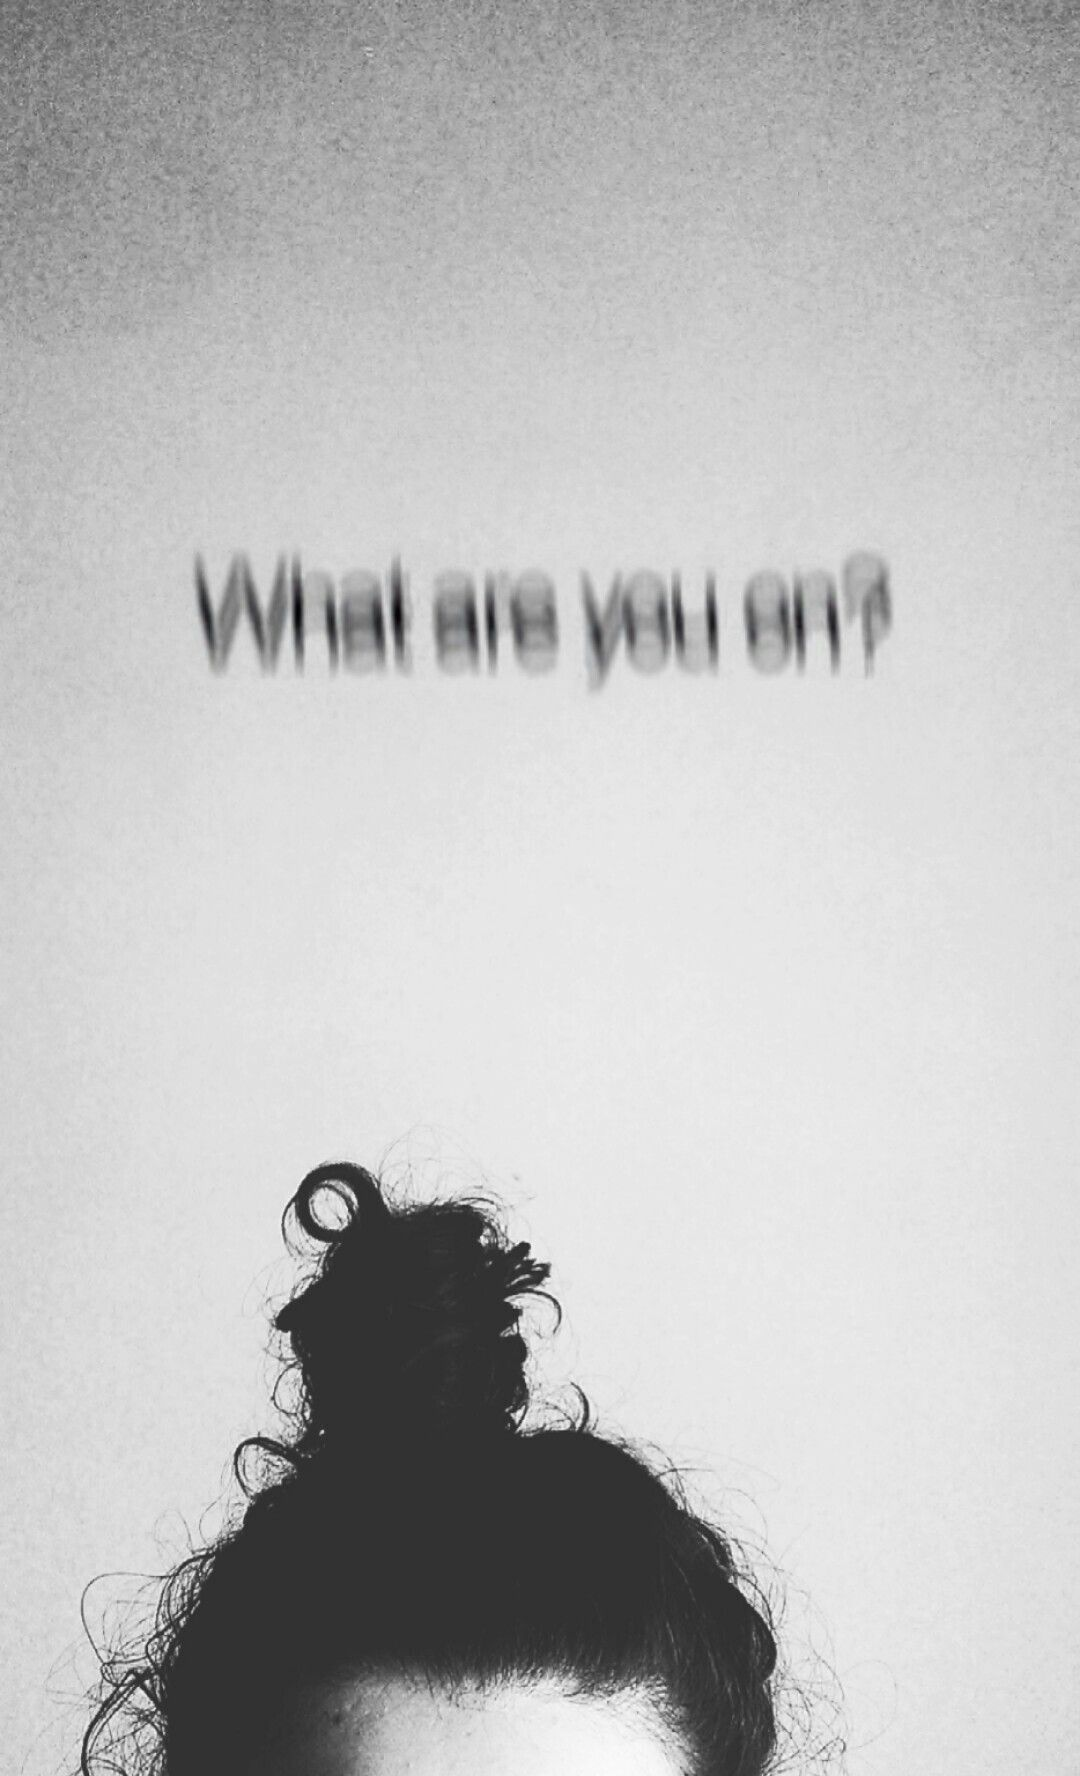 Wallpaper Tumblr Photography Iphone Backgrounds Cool Quote